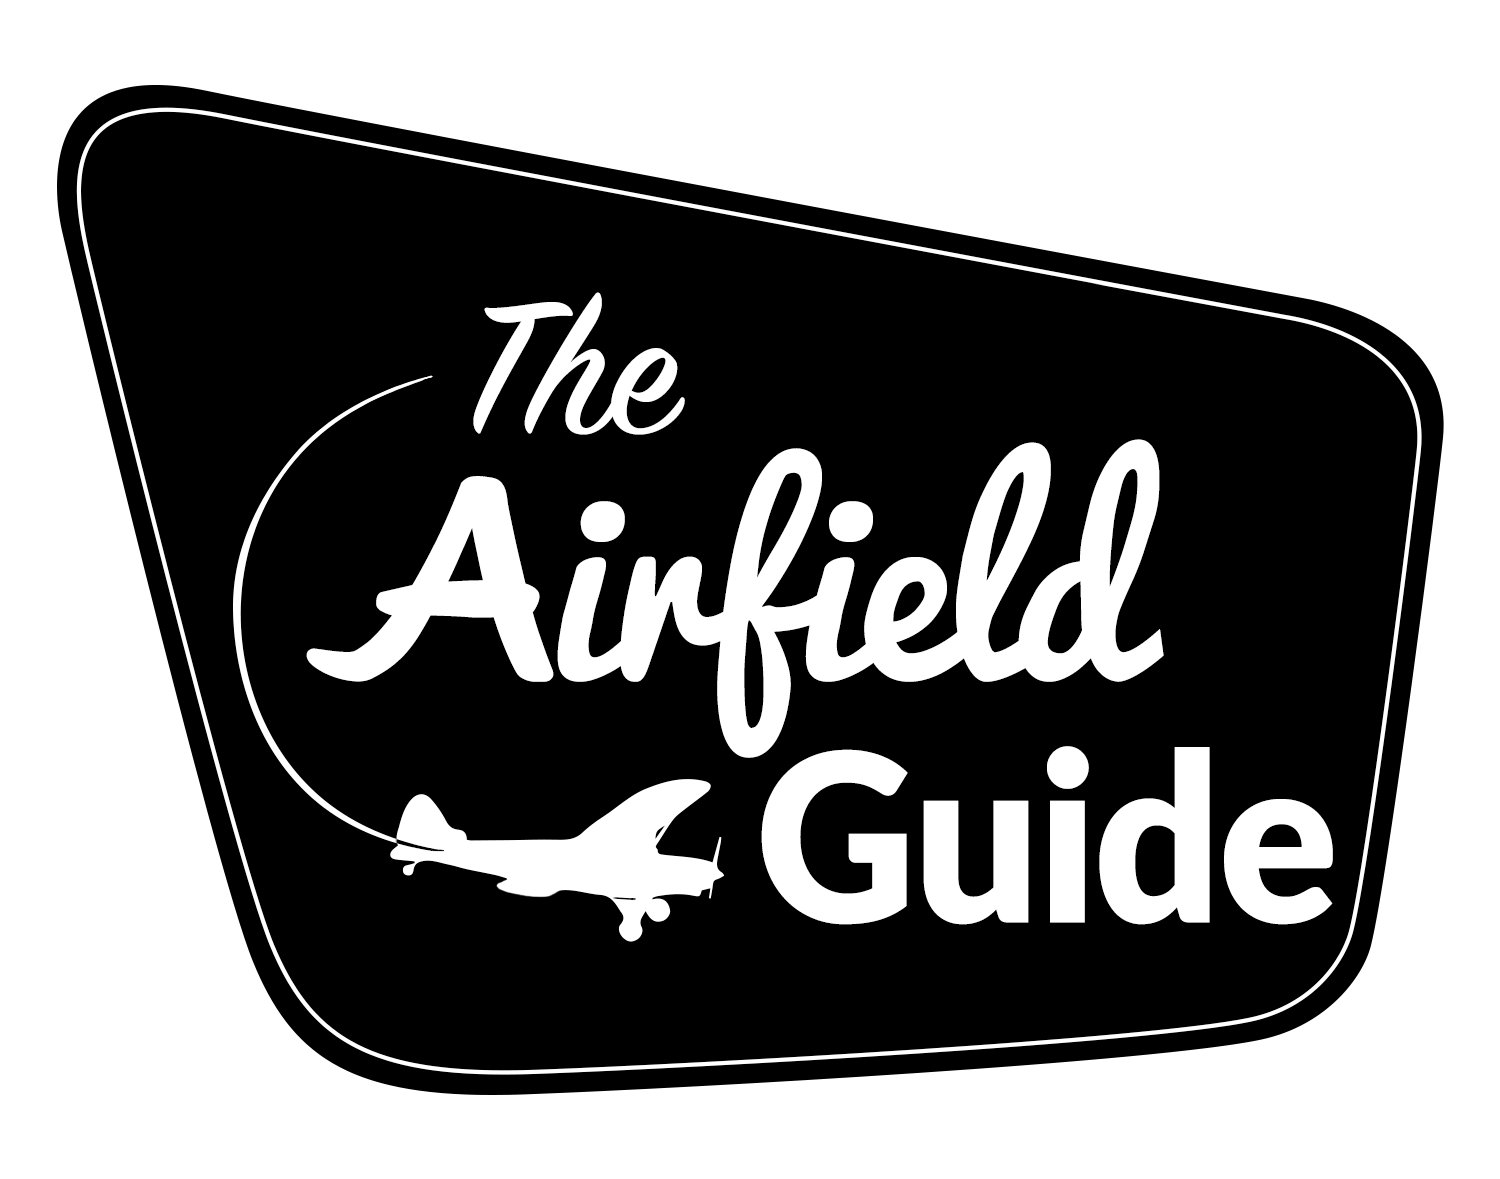 - The Airfield.Guide is a repository for information about out-of-the-way airports and places that most pilots don't know about. If you're interested in recreational aviation and backcountry flying, you've come to the right place. Enjoy!